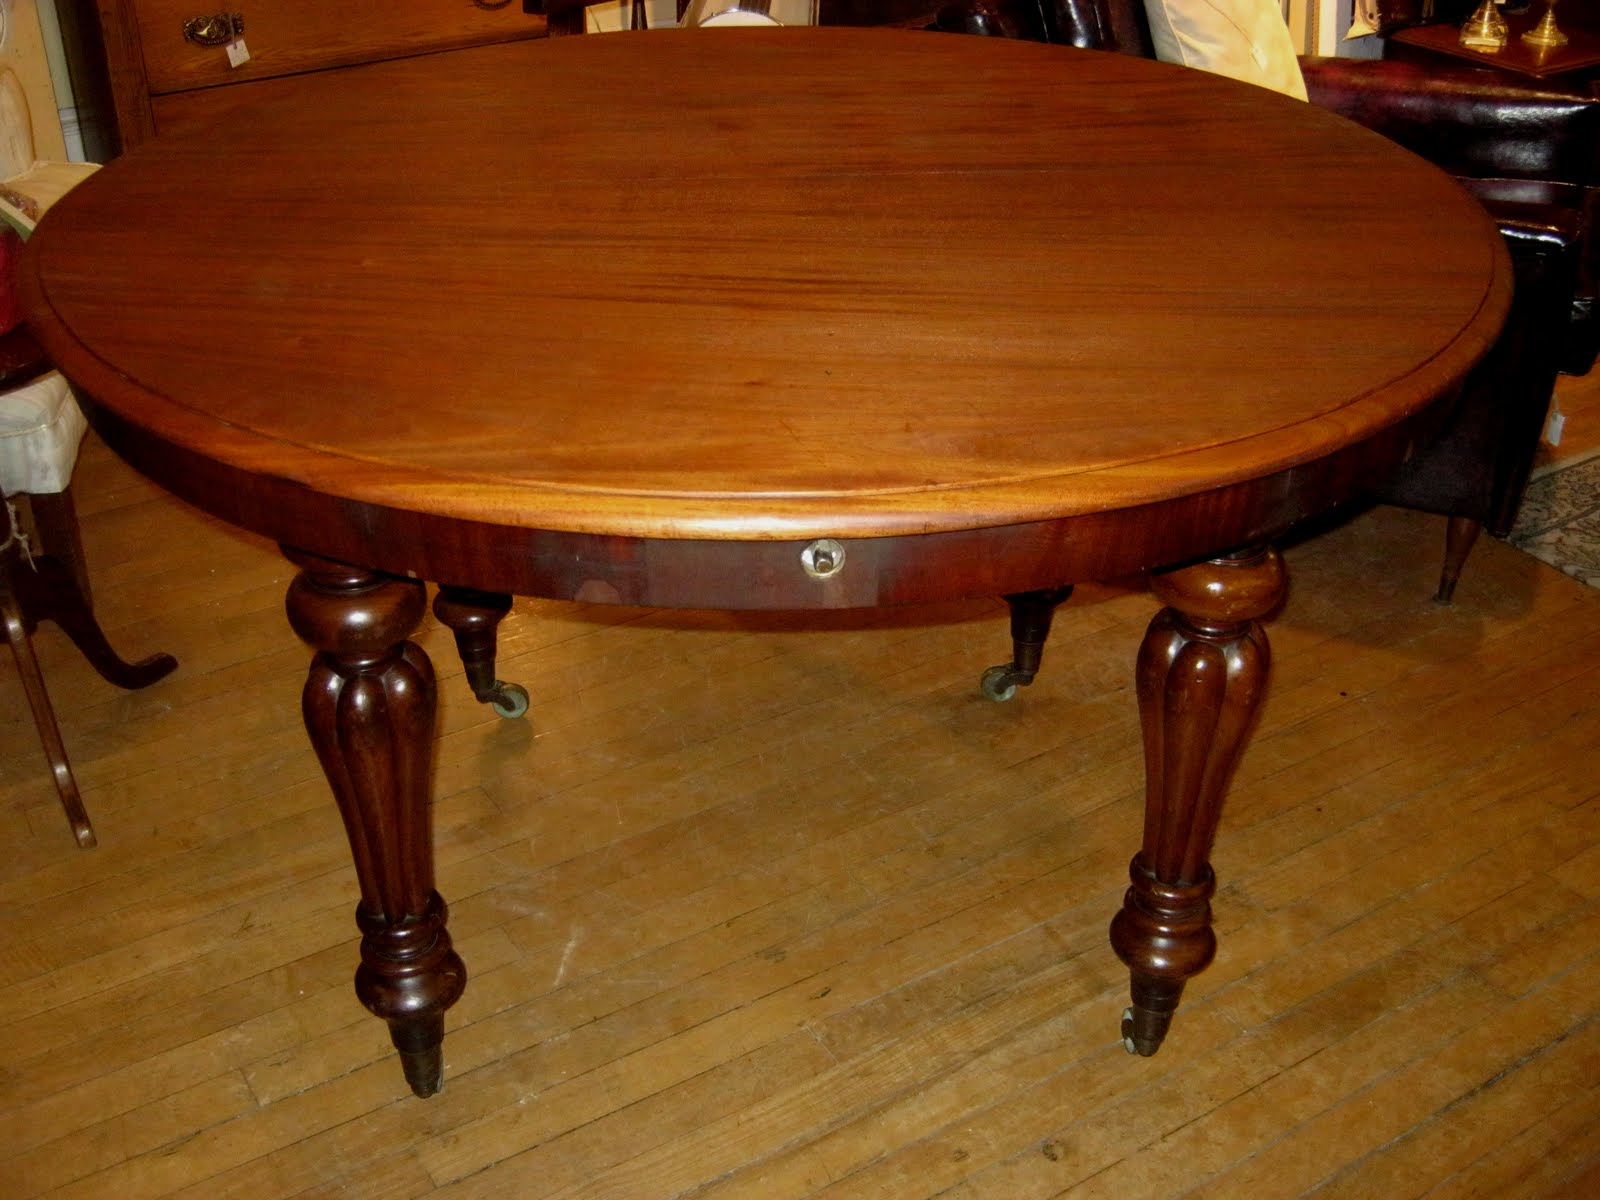 dining table circa 1860 48 diameter 30 high a lovely size for dining